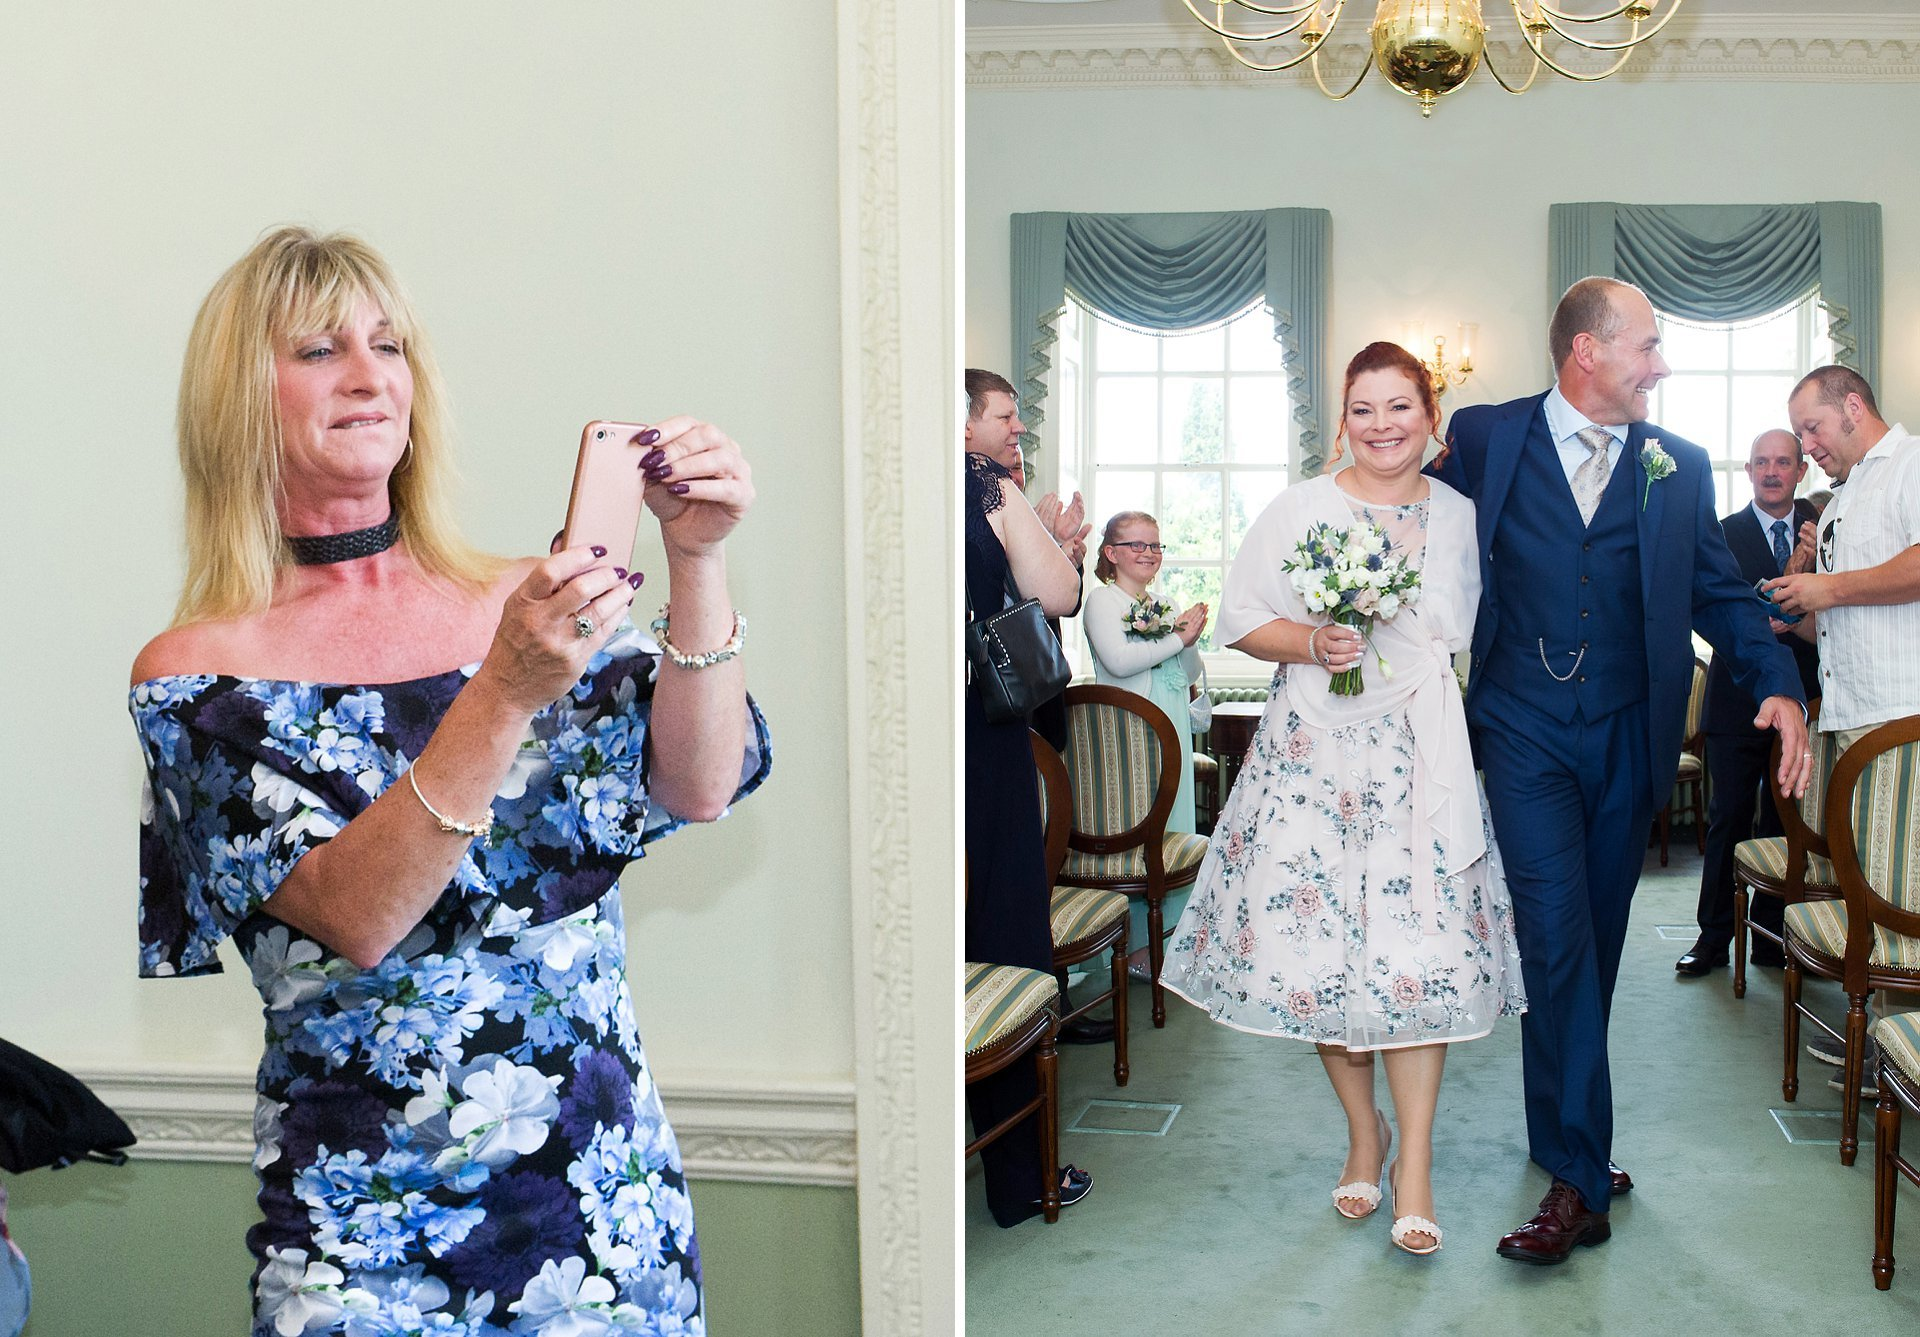 A guest photographs the bride and groom leaving the Drawing Room ceremony room at Park House in Horsham, aka Horsham registration office